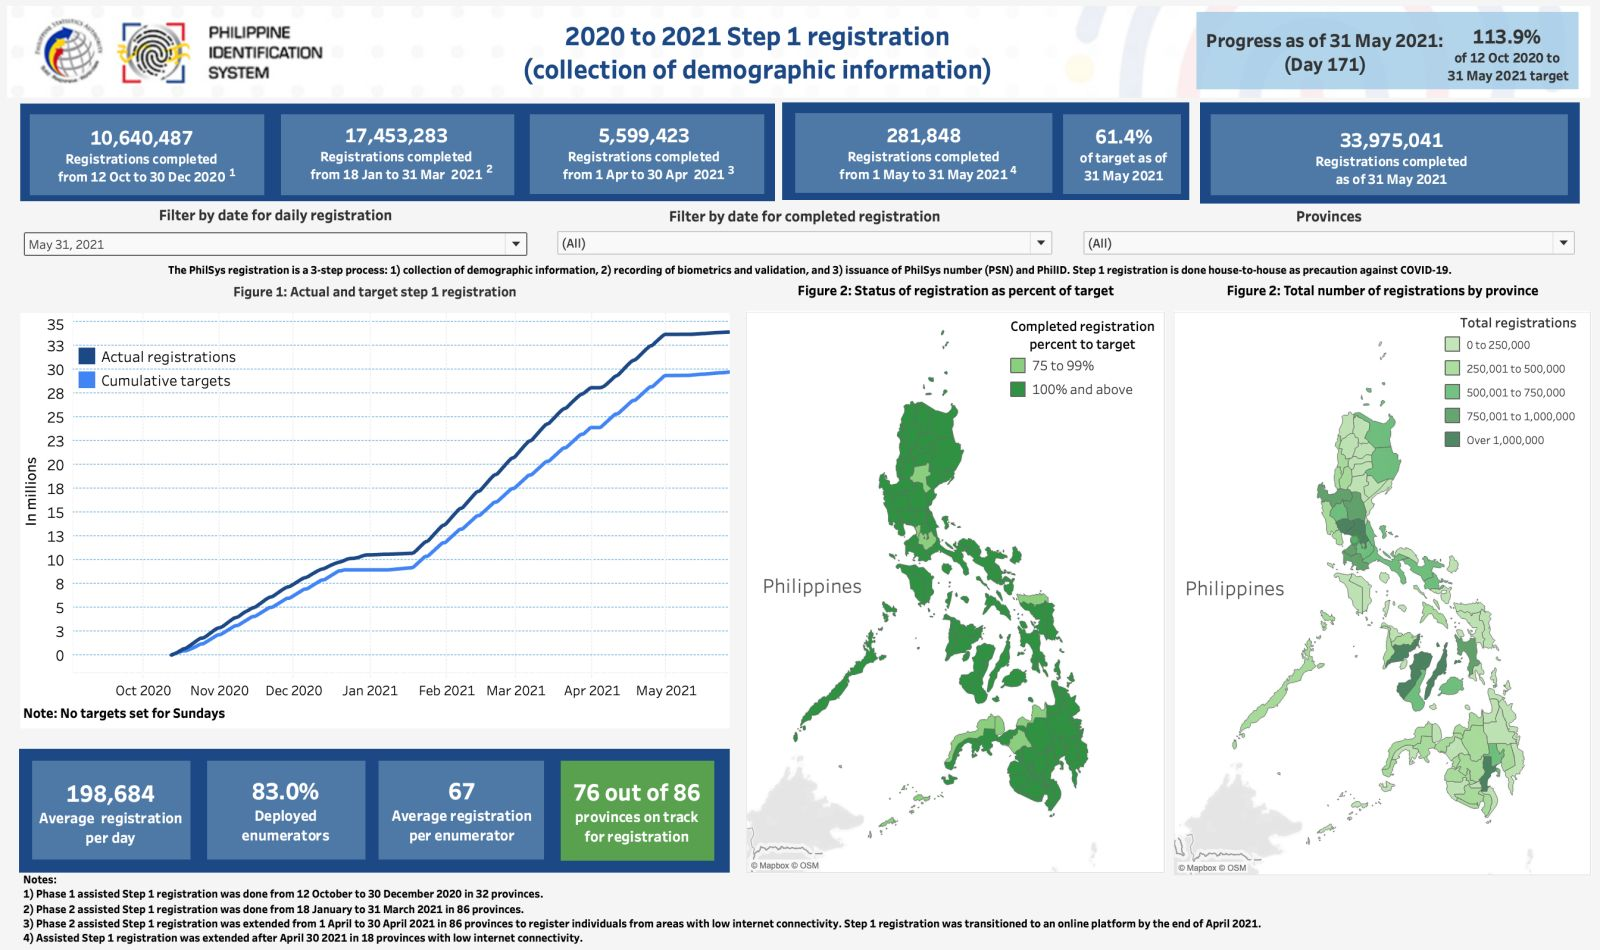 Step 1 Dashboard as of 31 May 2021